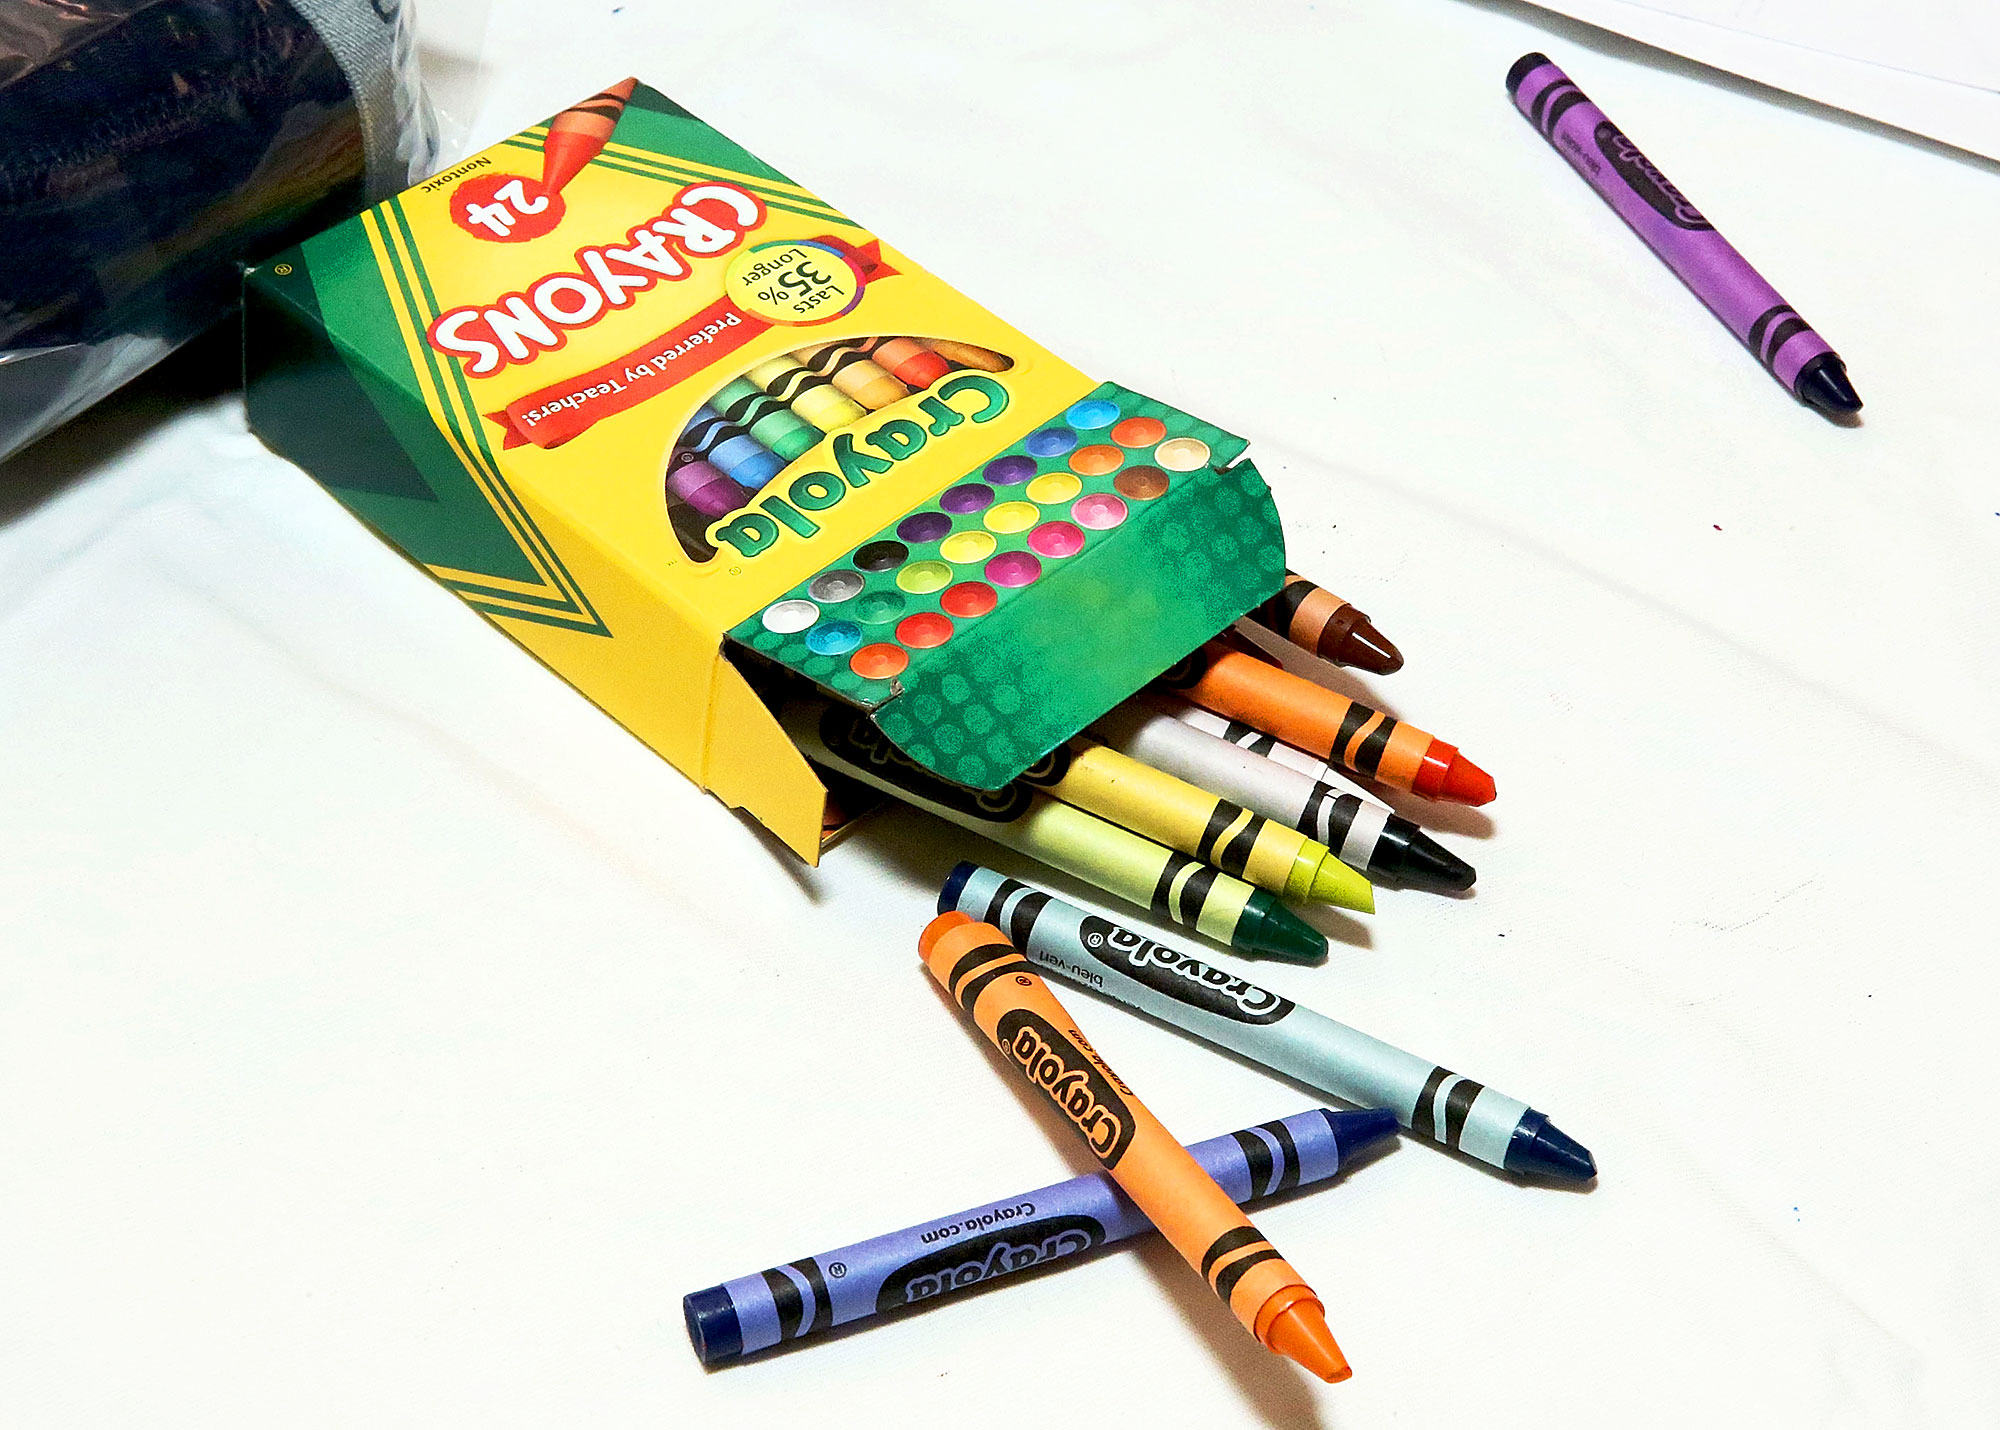 crayola is retiring one of the colors from its 24 crayon box